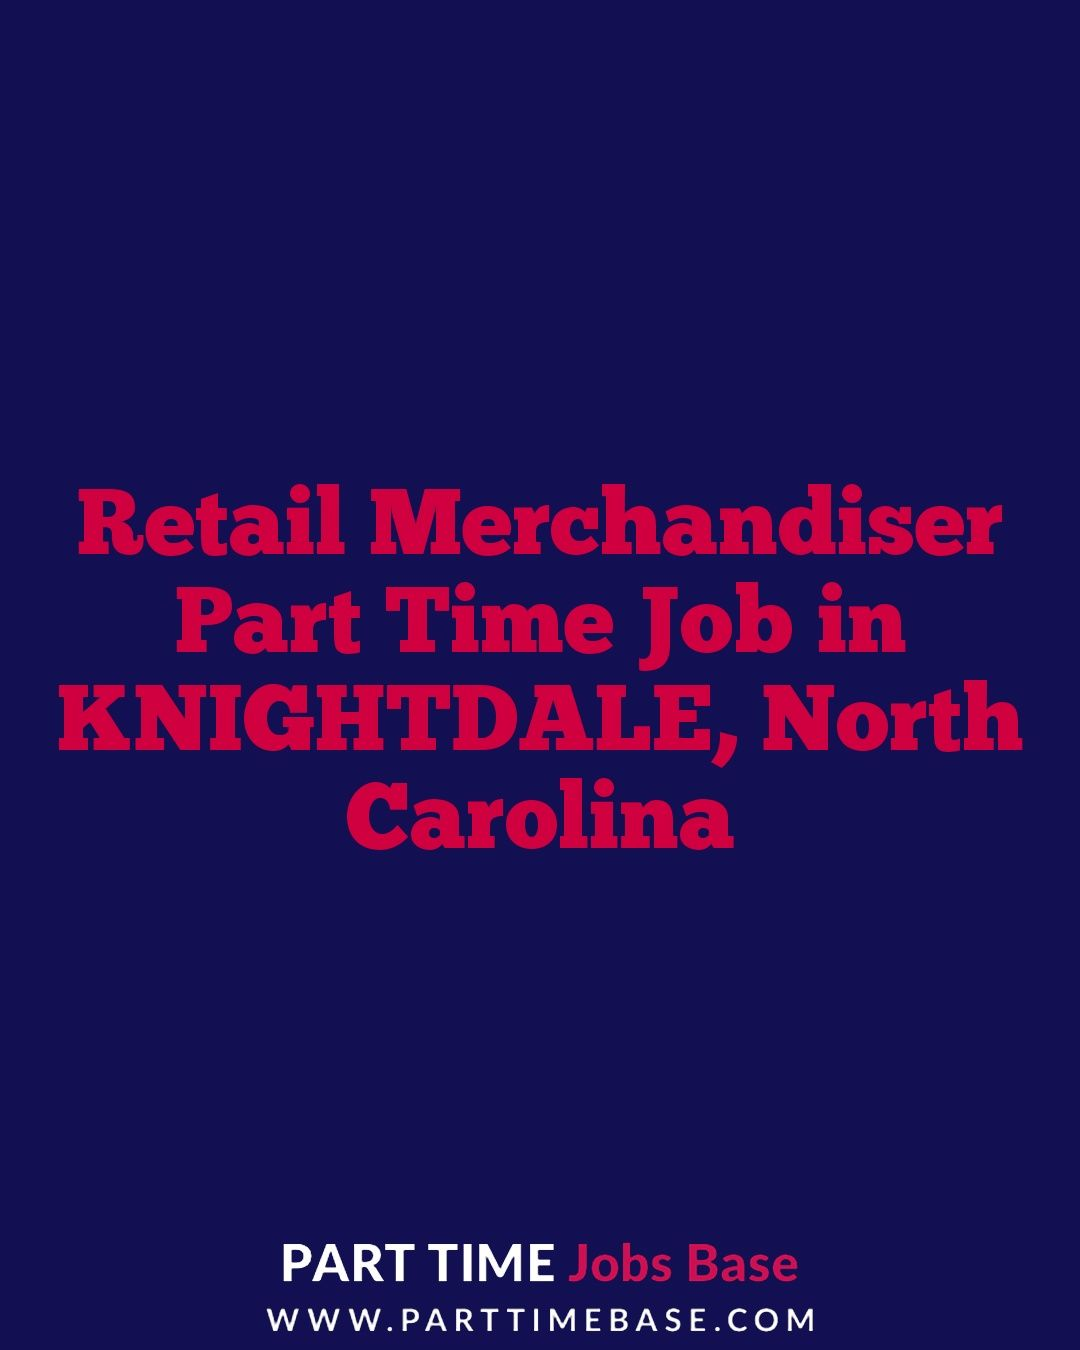 Retail Merchandiser Part Time Job In Knightdale Parttime